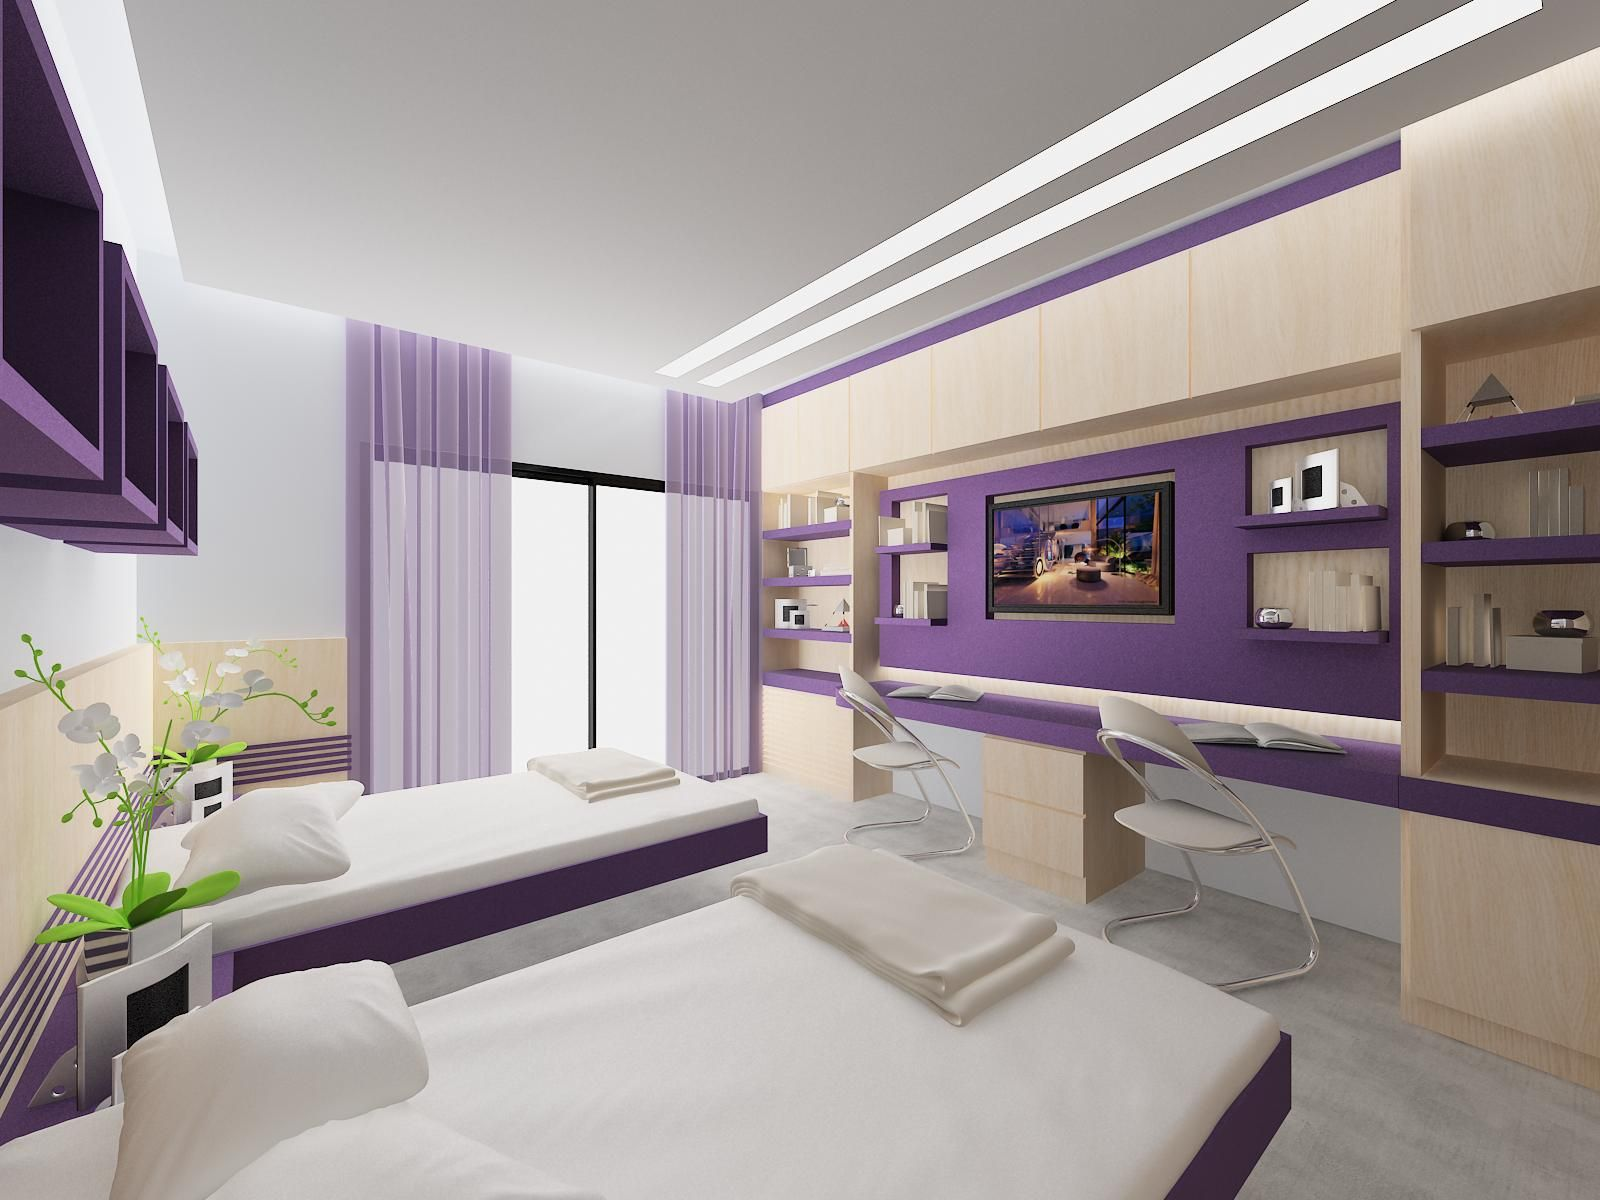 Bedroom Remodeling Ideas For Girls wonderful false ceiling lights for teen girls bedroom designs